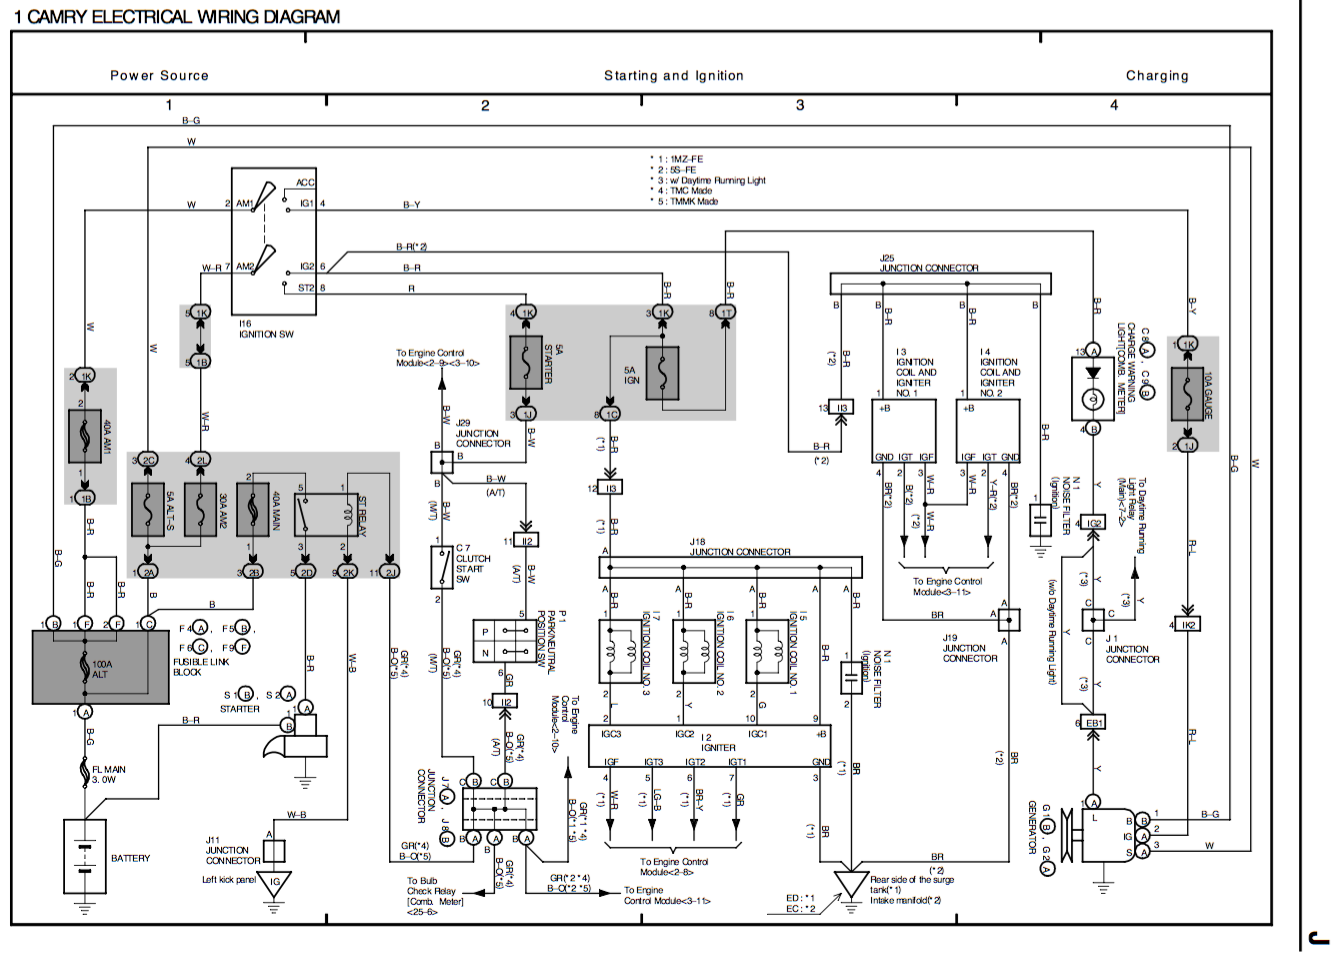 Camry Spark Plug Wiring Diagram Get Free Image About Wiring Diagram